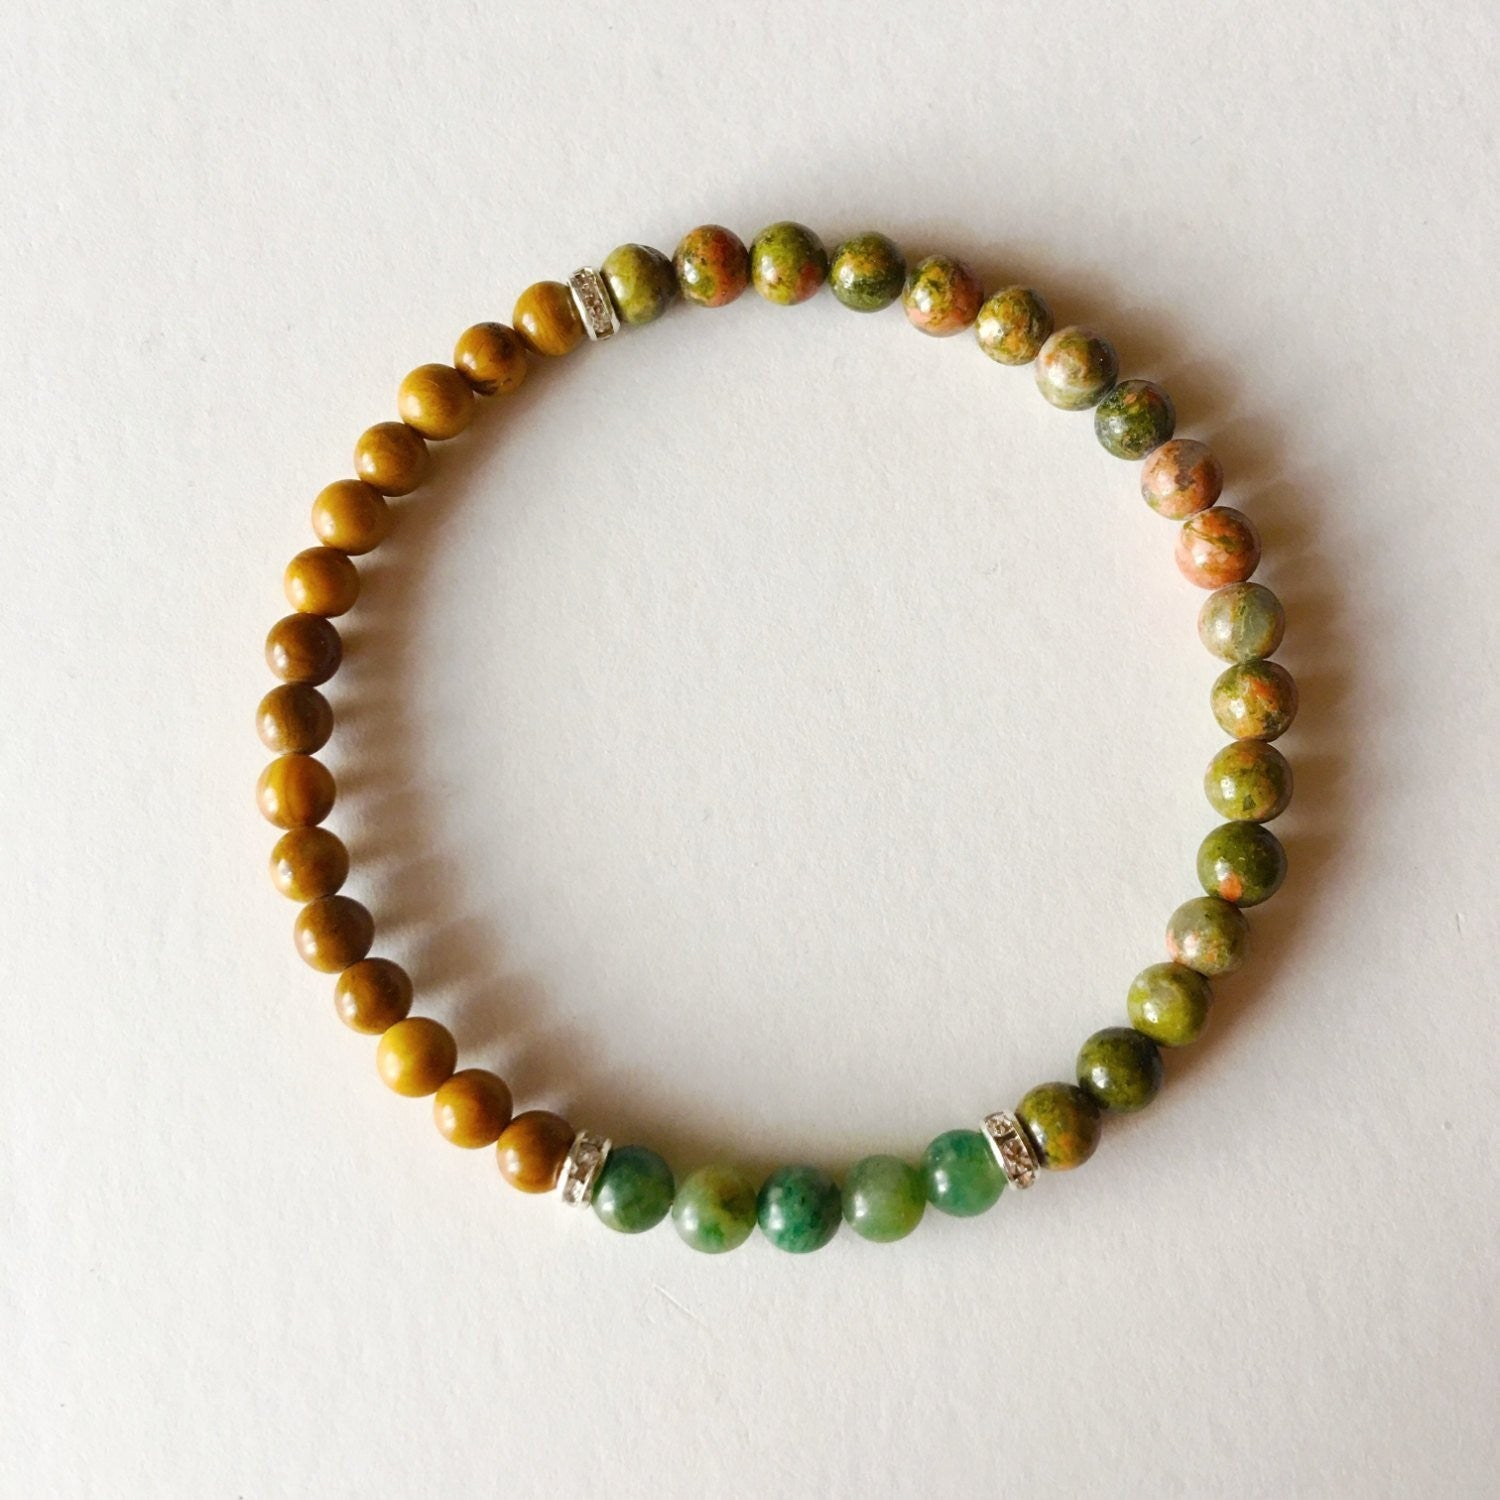 African Jade, Yellow Jasper and Unakite Sterling Silver Bracelet